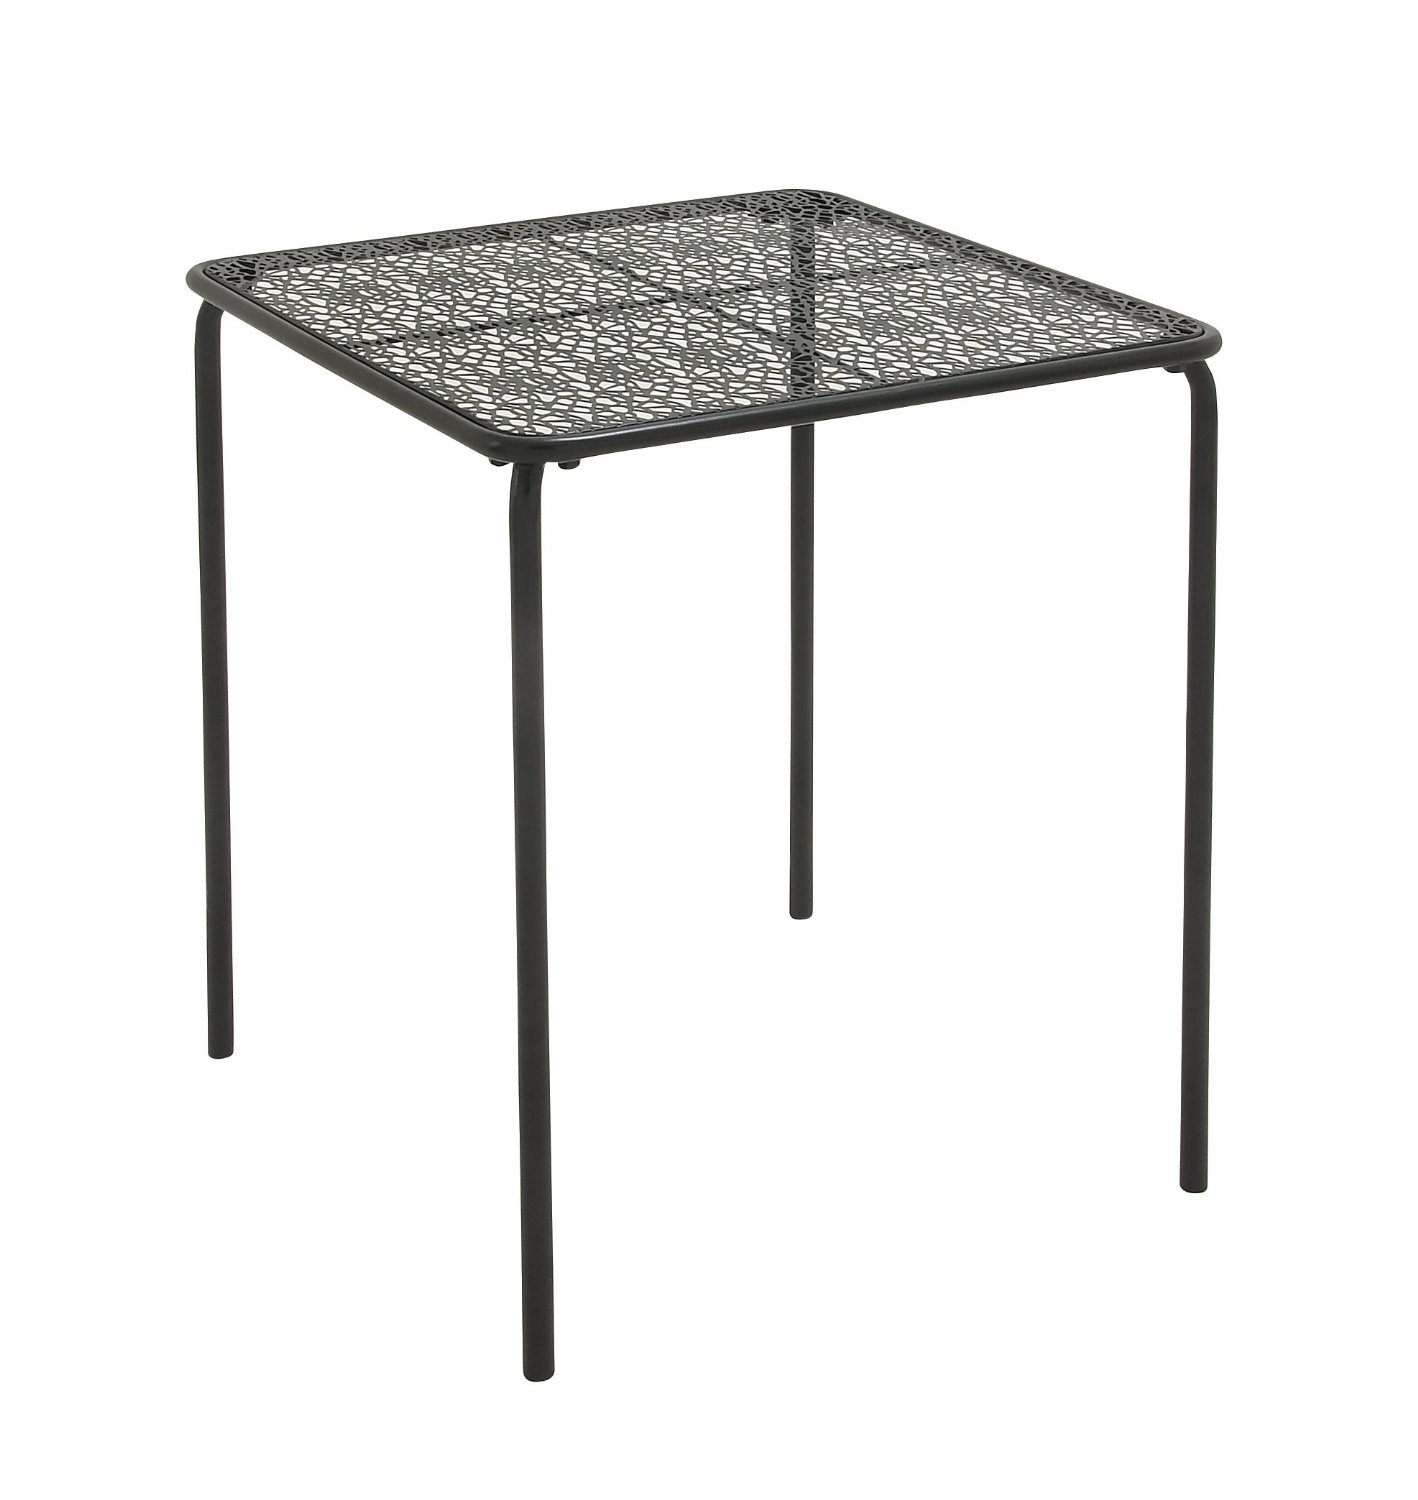 Plutus Brands Smartly Styled Metal Outdoor Table